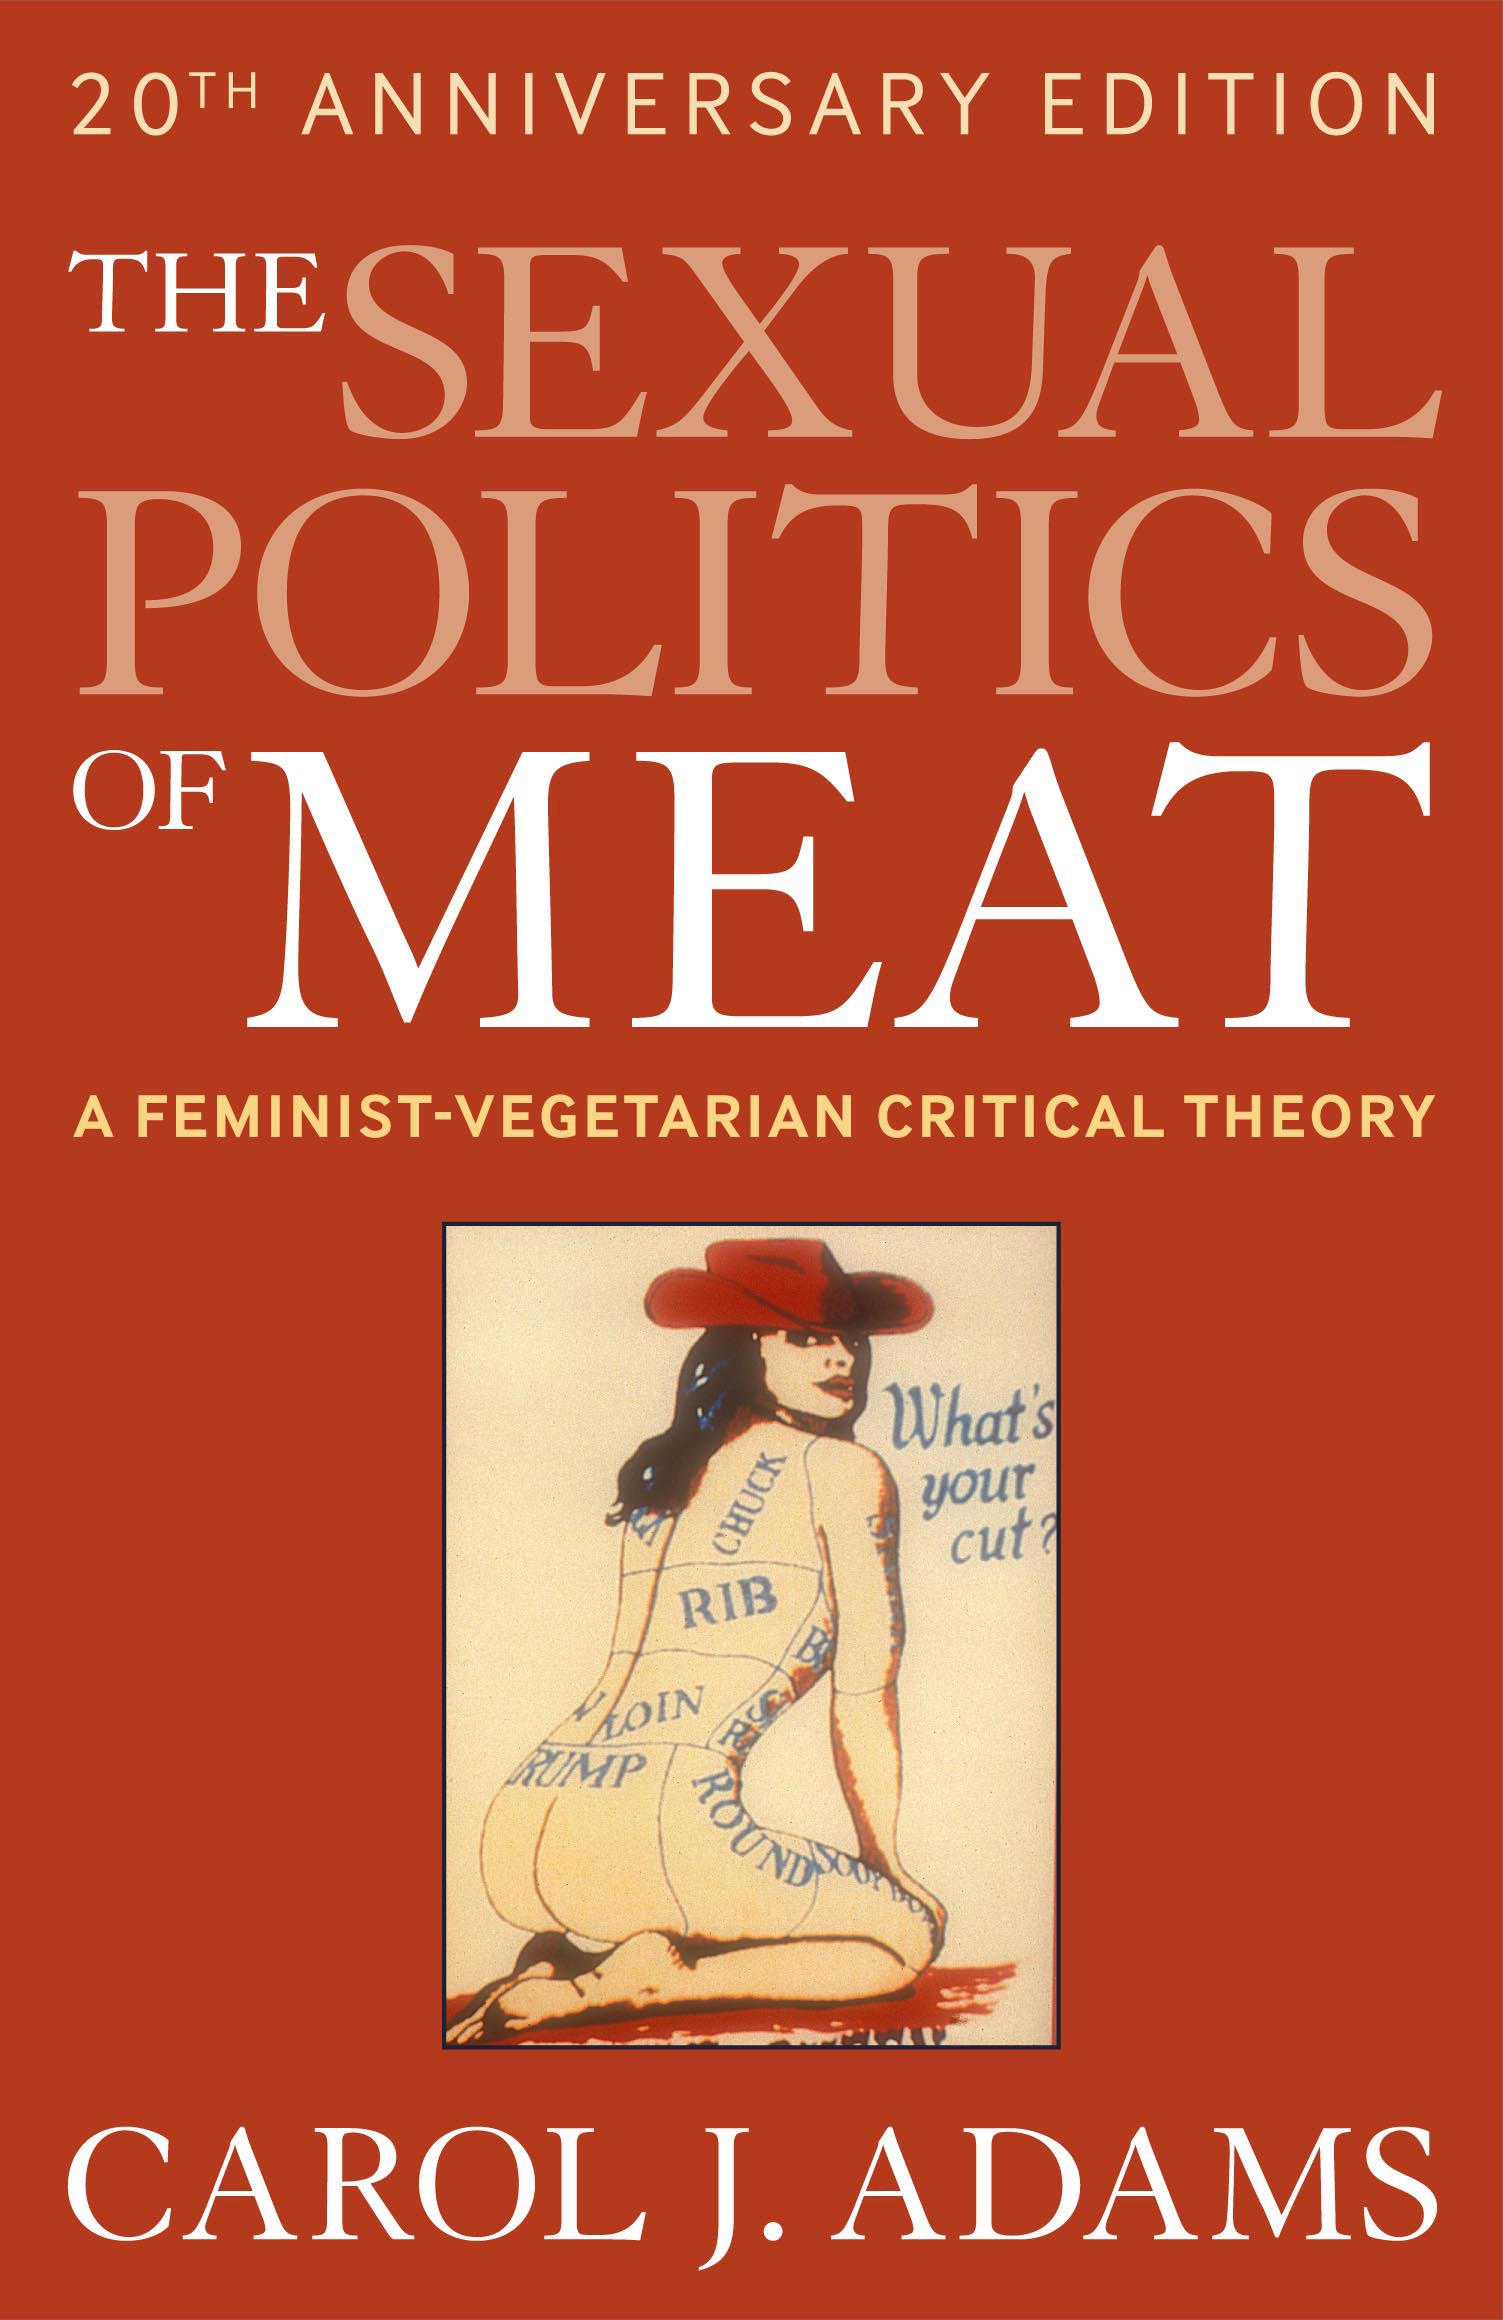 http://i0.wp.com/fatgayvegan.com/wp-content/uploads/2015/09/the-sexual-politics-of-meat-a-feminist-vegetarian-critical-theory-20th-anniversary-edition_3256186.jpg?fit=1503%2C2320